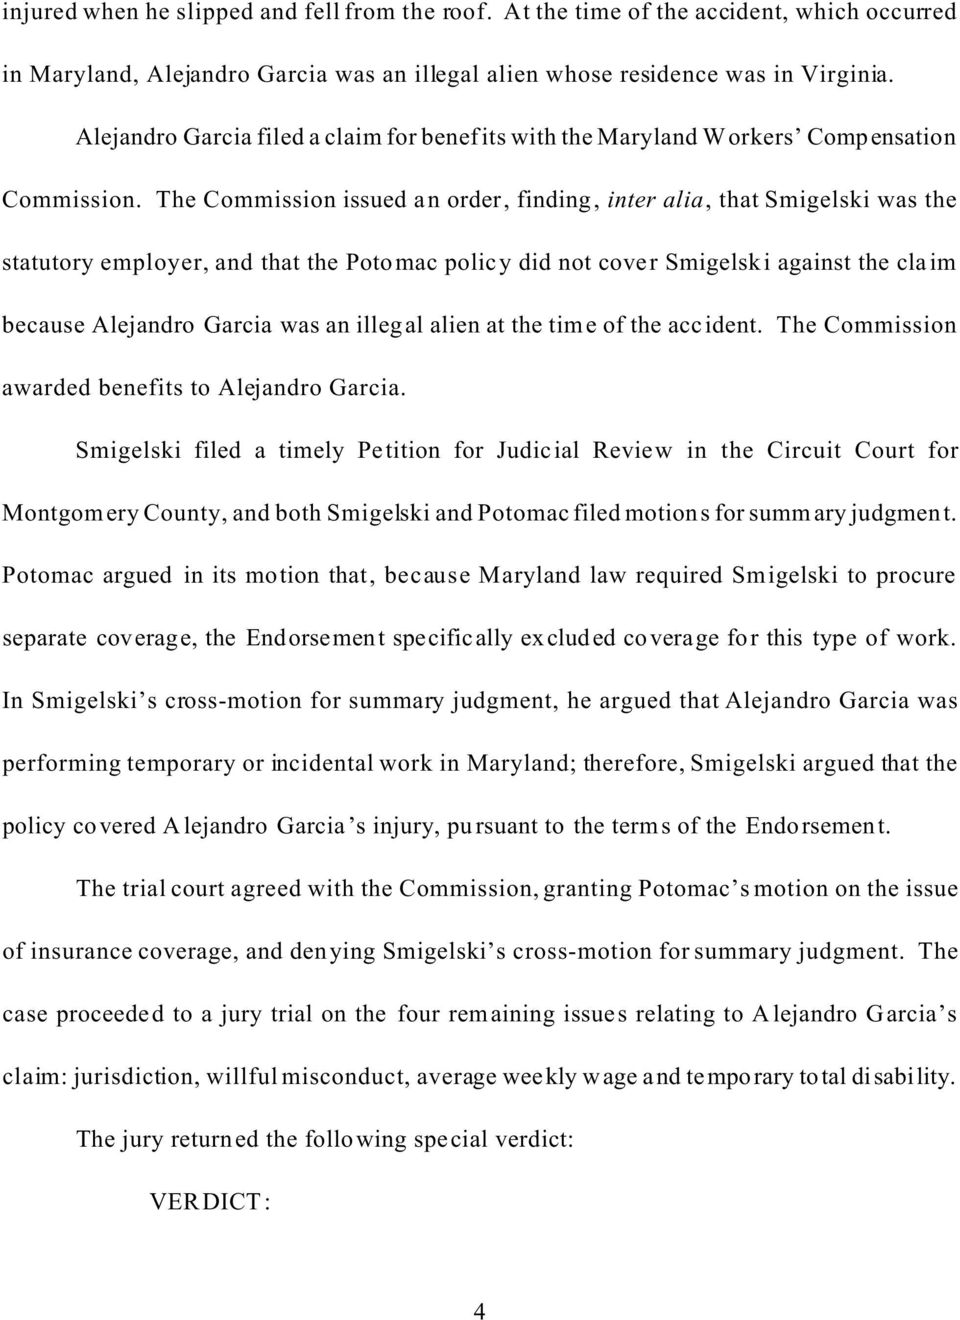 The Commission issued an order, finding, inter alia, that Smigelski was the statutory employer, and that the Potomac policy did not cover Smigelski against the claim because Alejandro Garcia was an